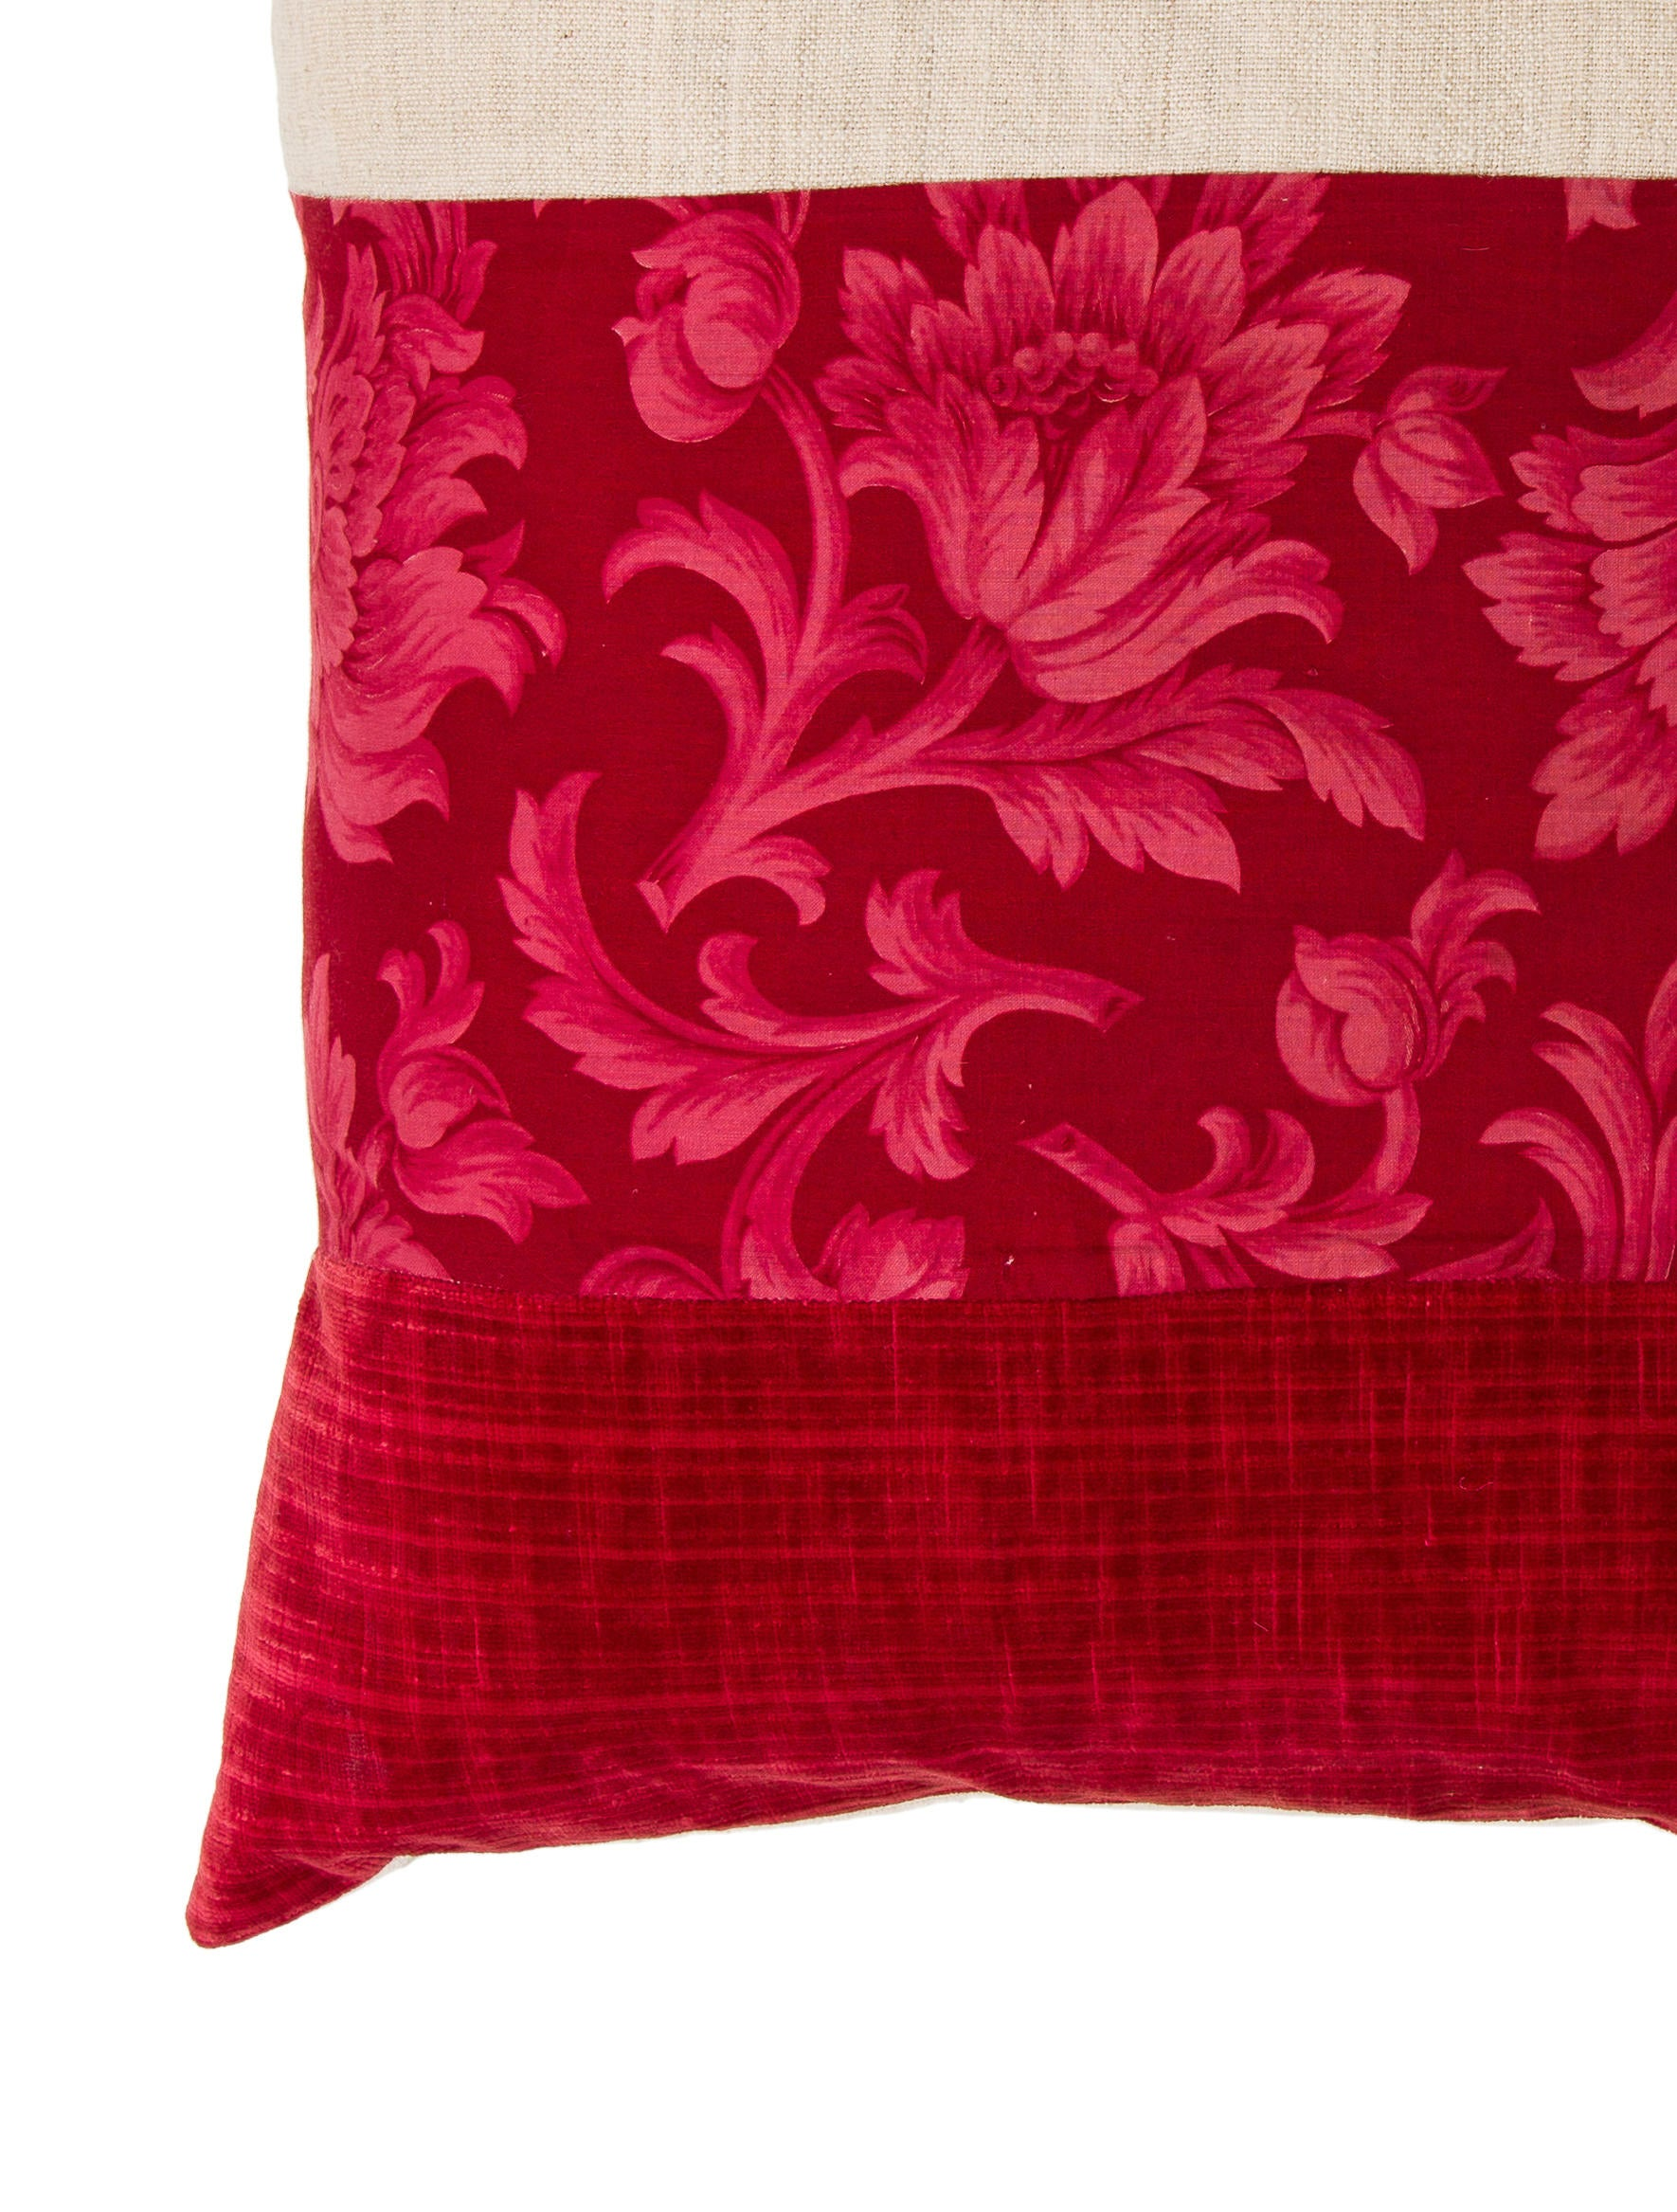 Velvet-Paneled Throw Pillow - Bedding And Bath - HME21207 The RealReal